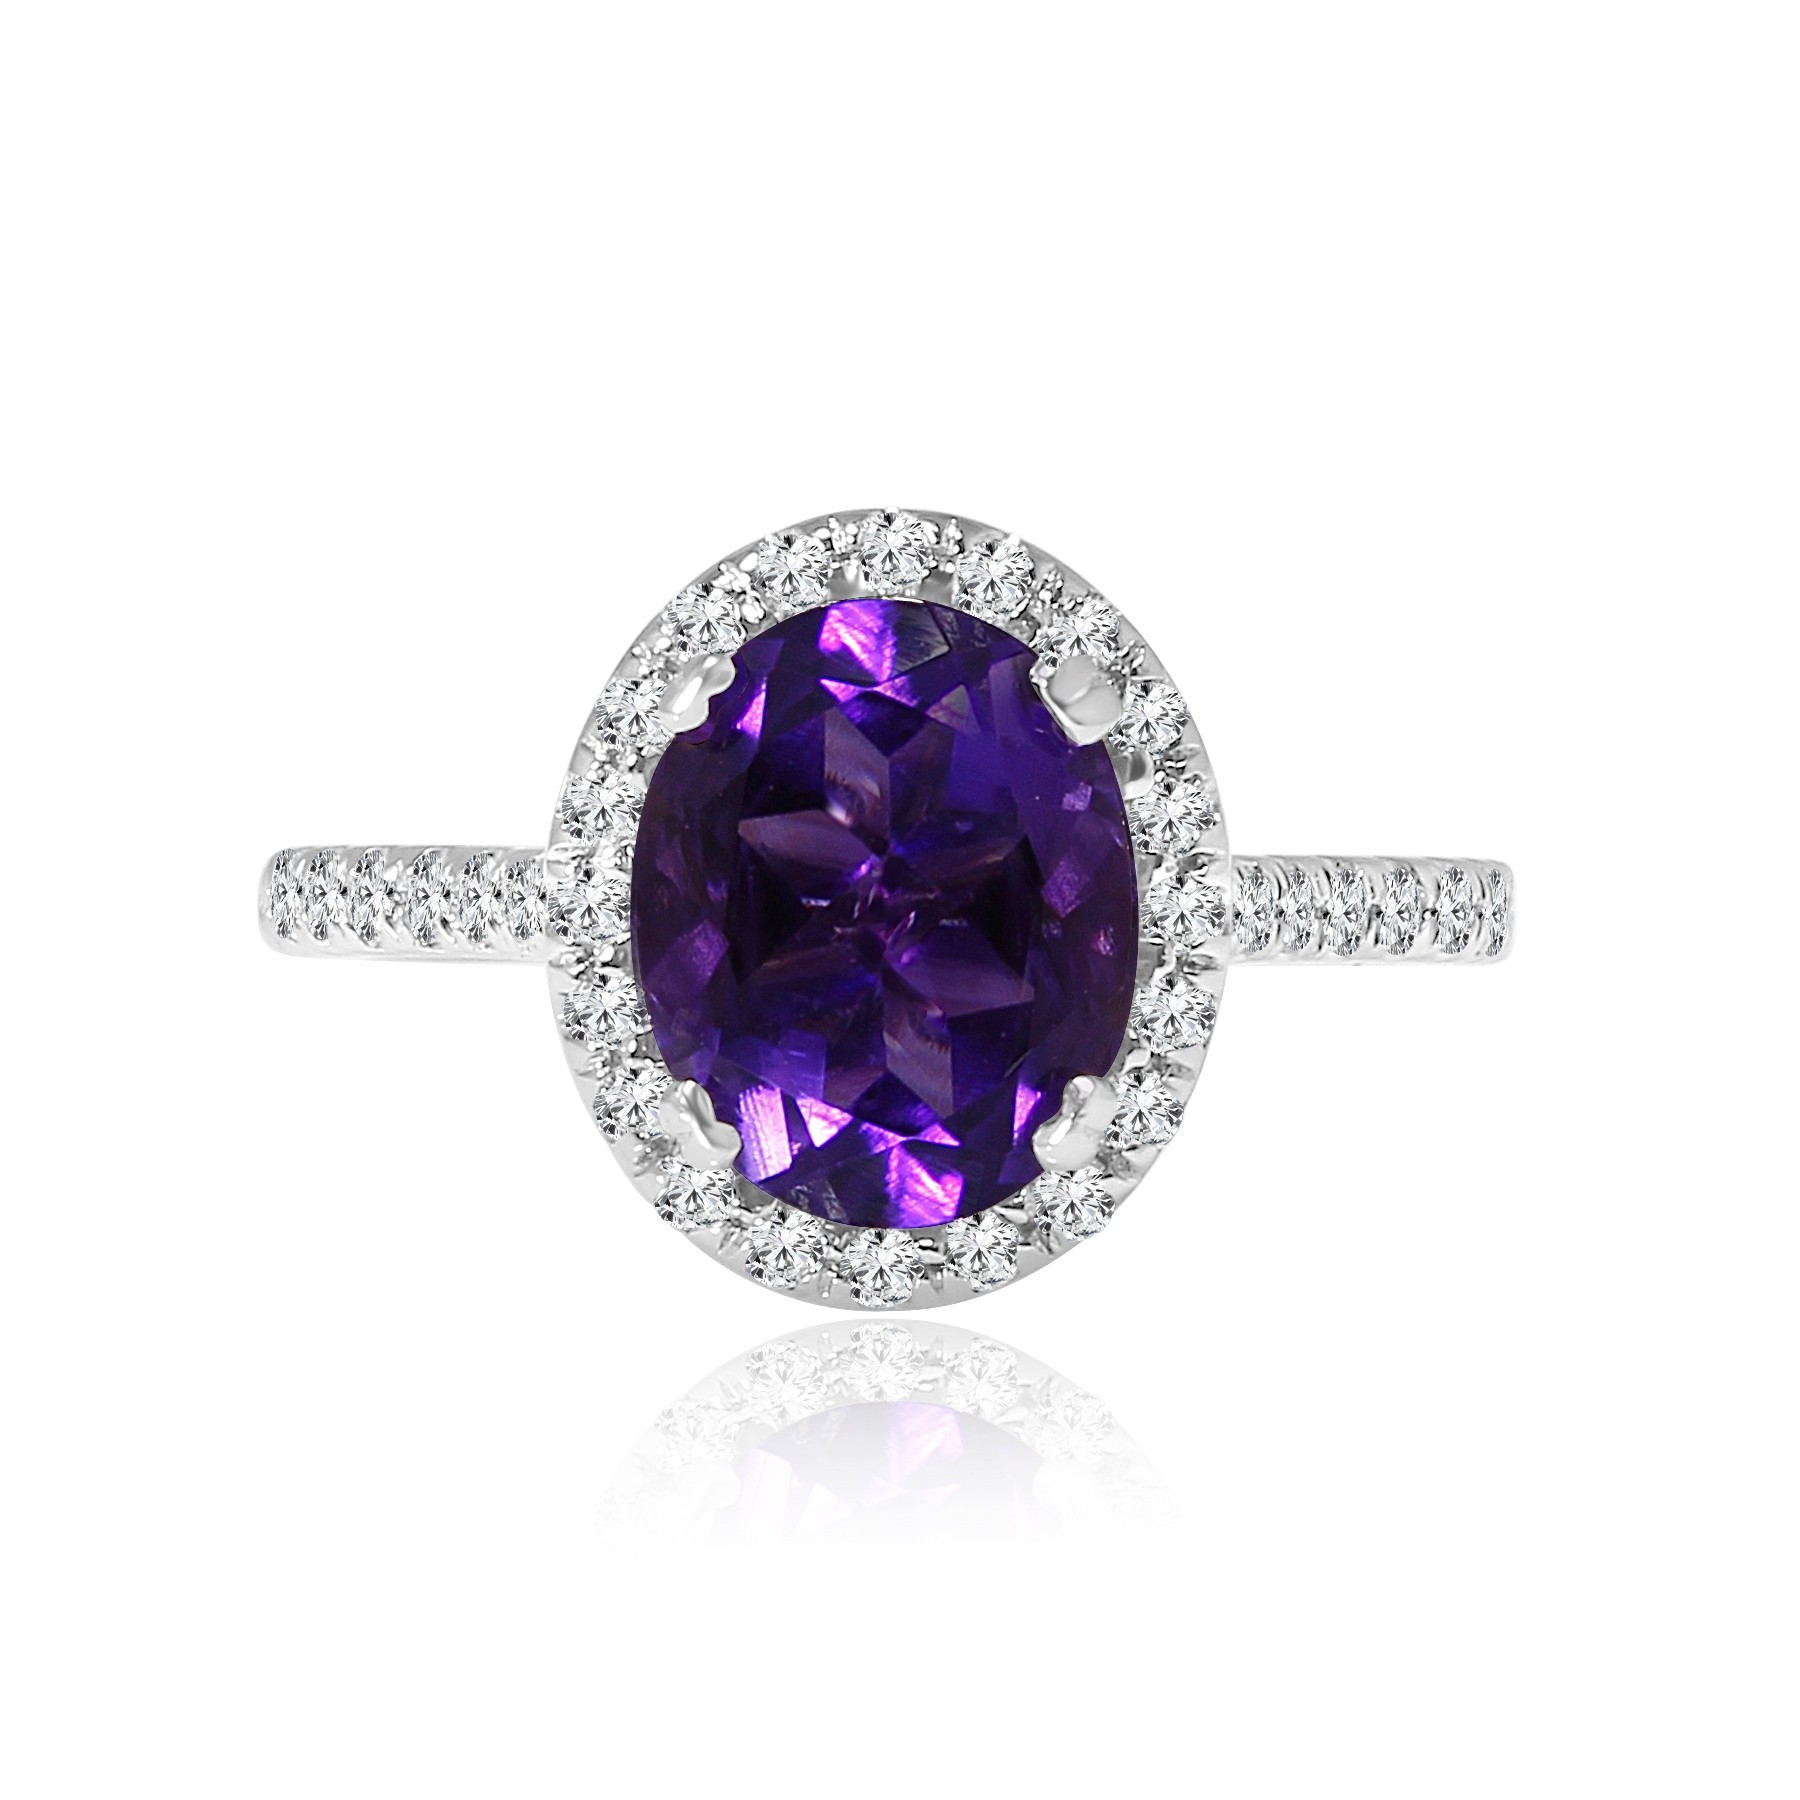 14k w/g diamond & amethyst ring 2.50ctw